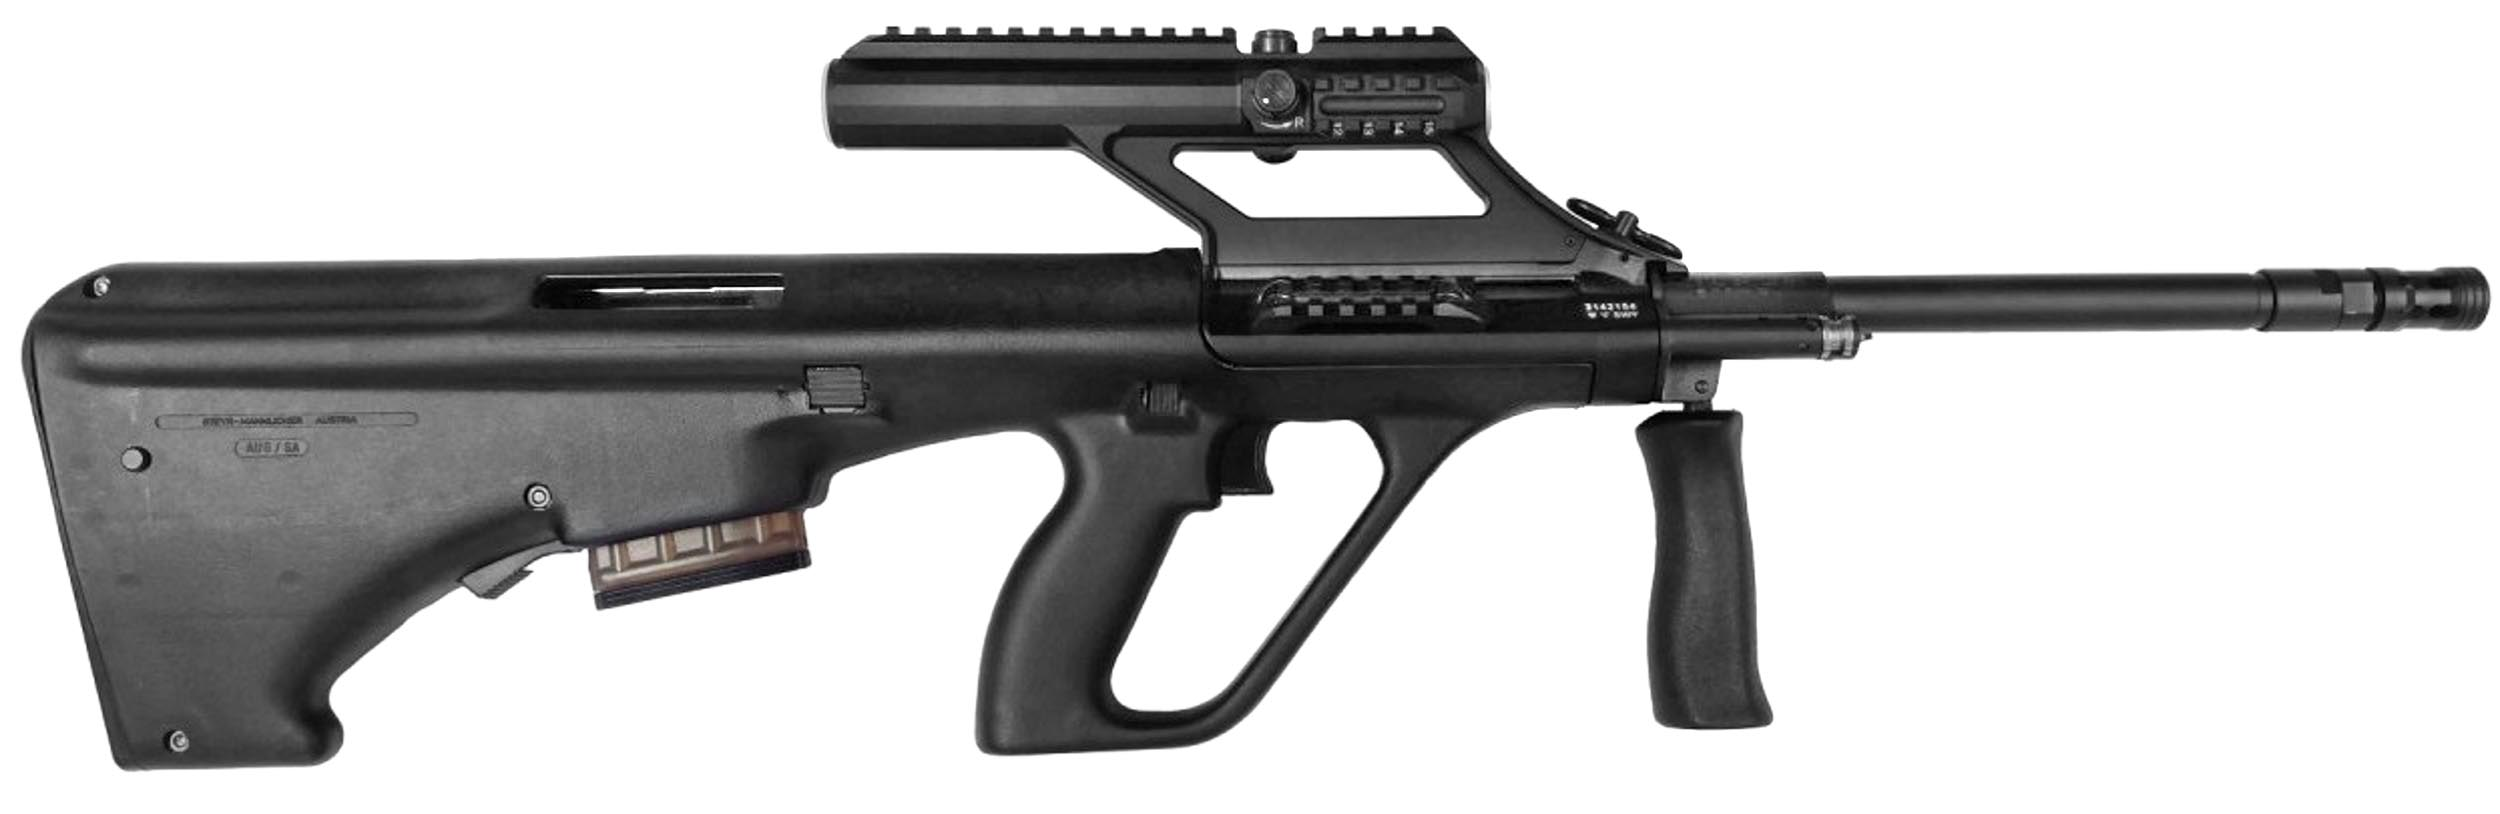 ST4120 Steyr carabine AUG Z A3 SE (SPECIAL EDITION) cal.223 550 mm - ST4120